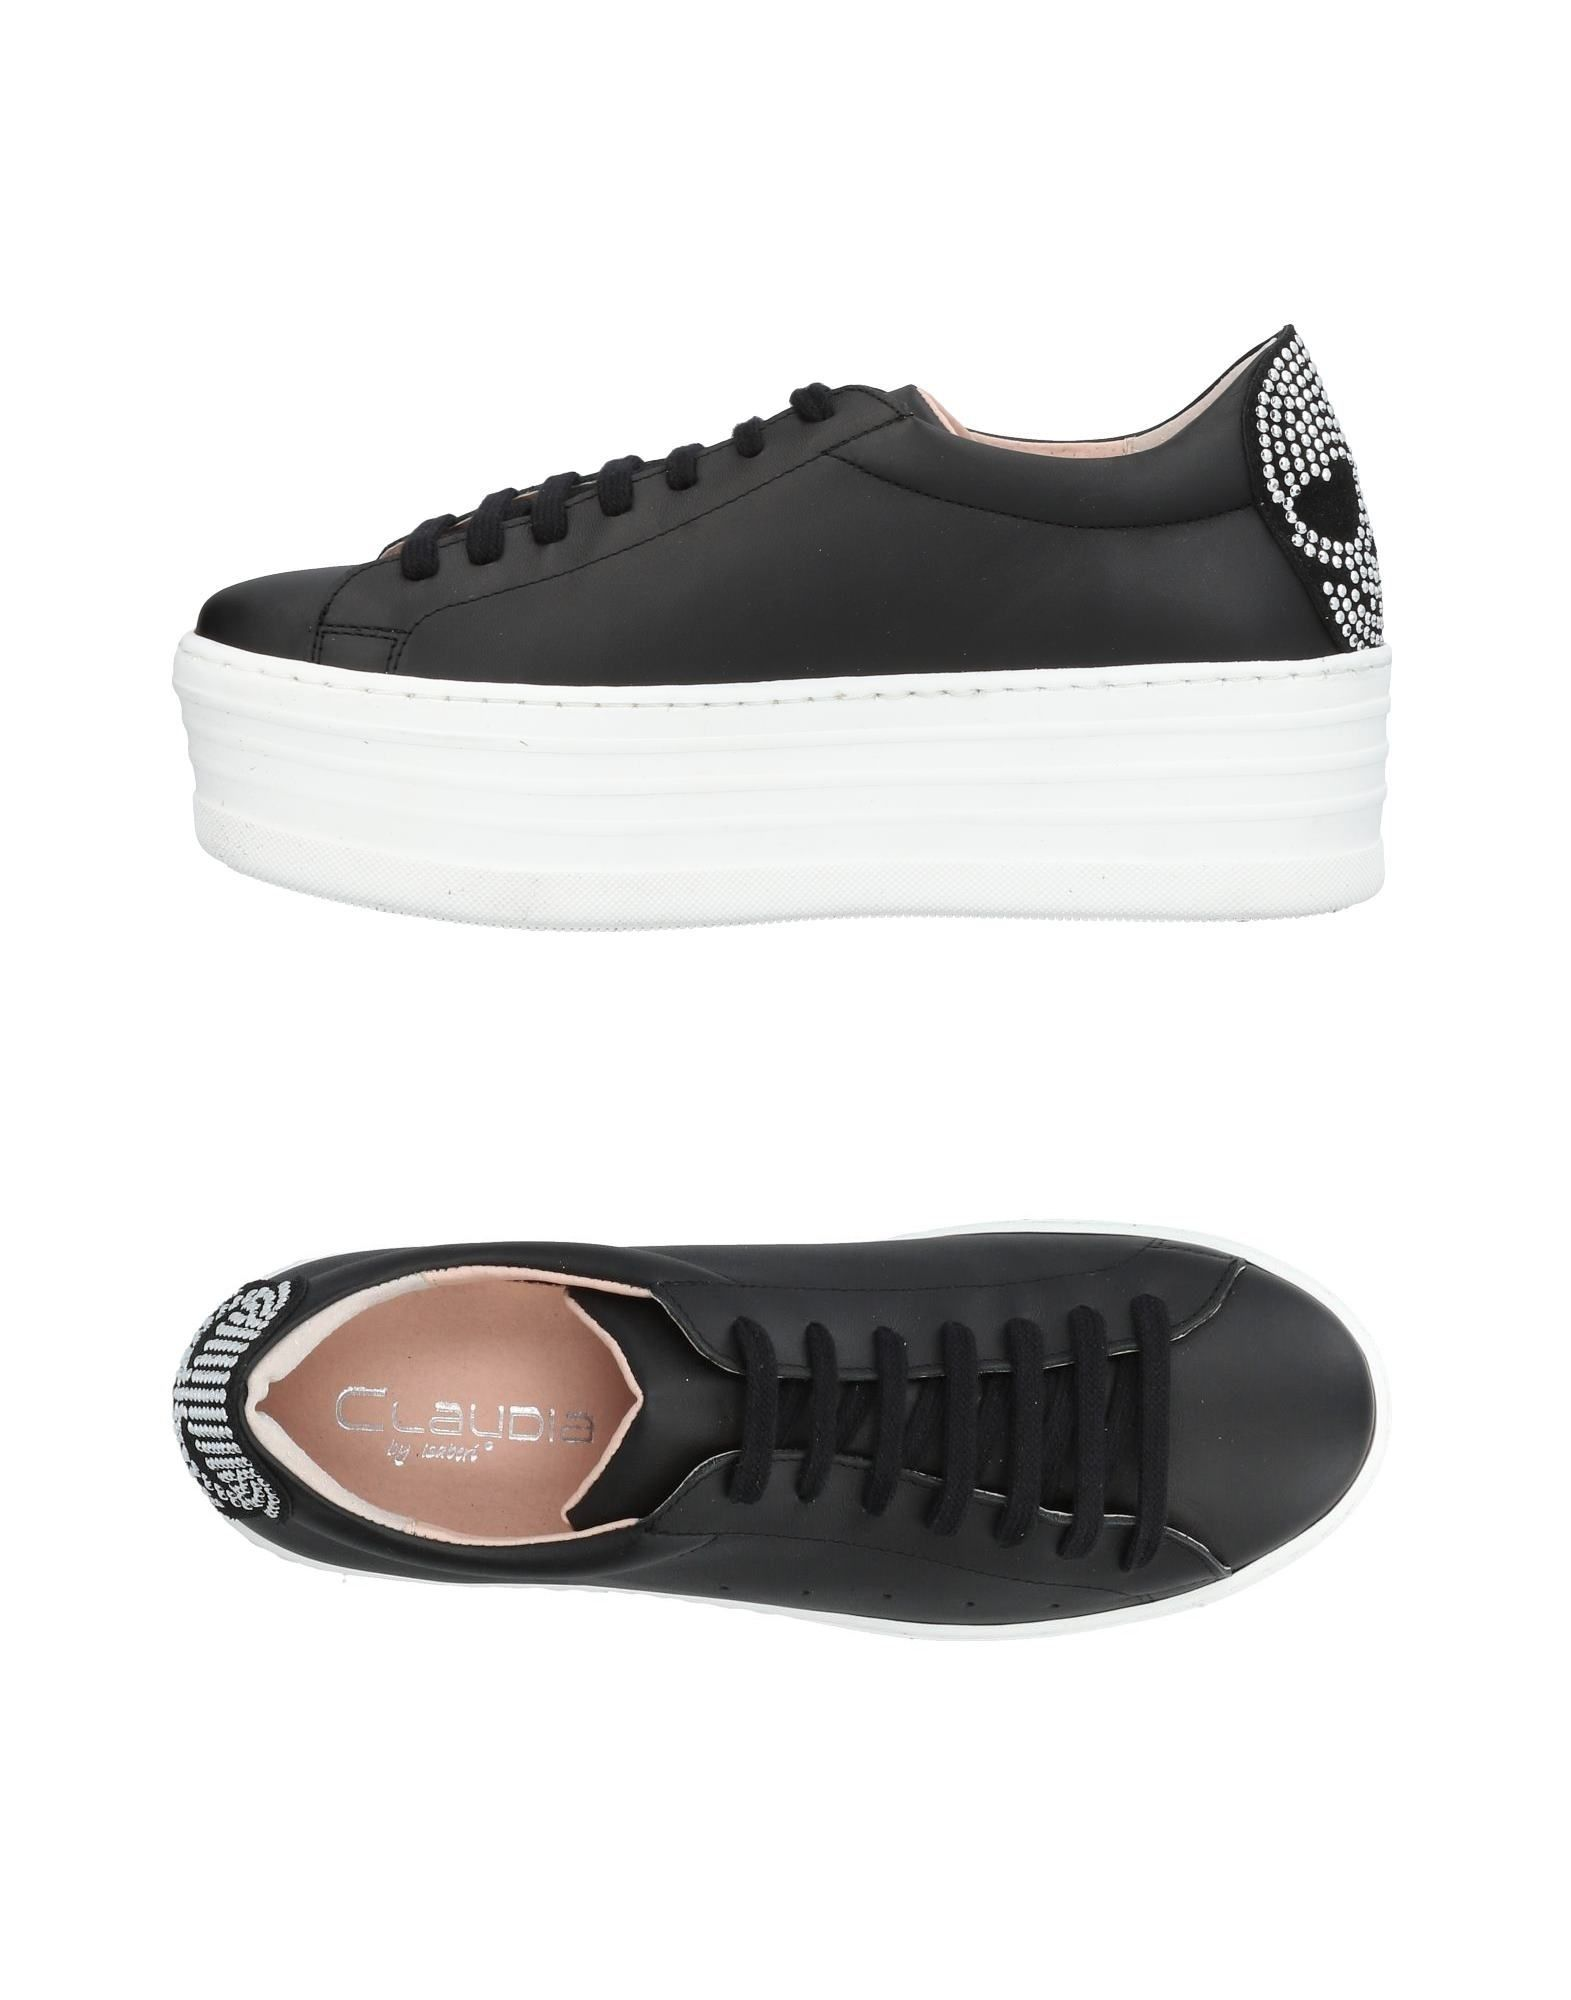 Sneakers Claudia By Isaberi Femme - Sneakers Claudia By Isaberi sur